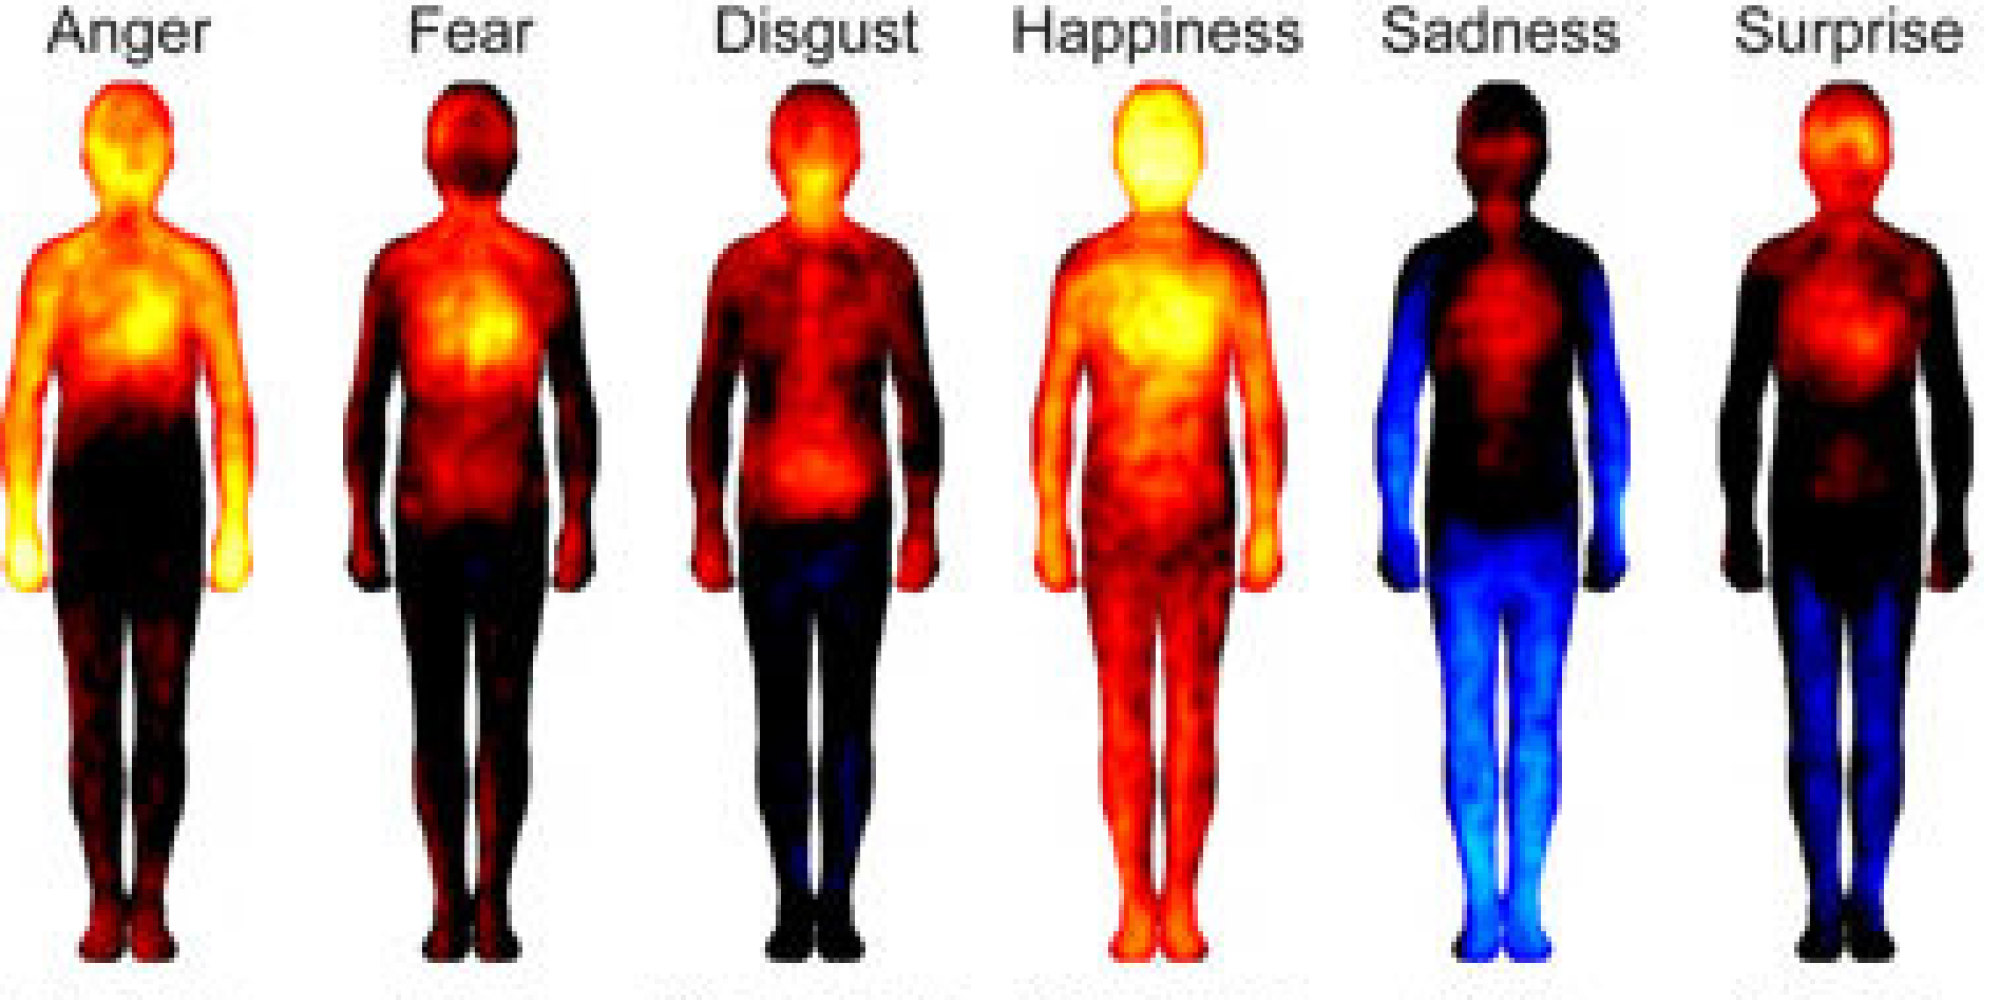 How much of an influence on our health do our emotions have?